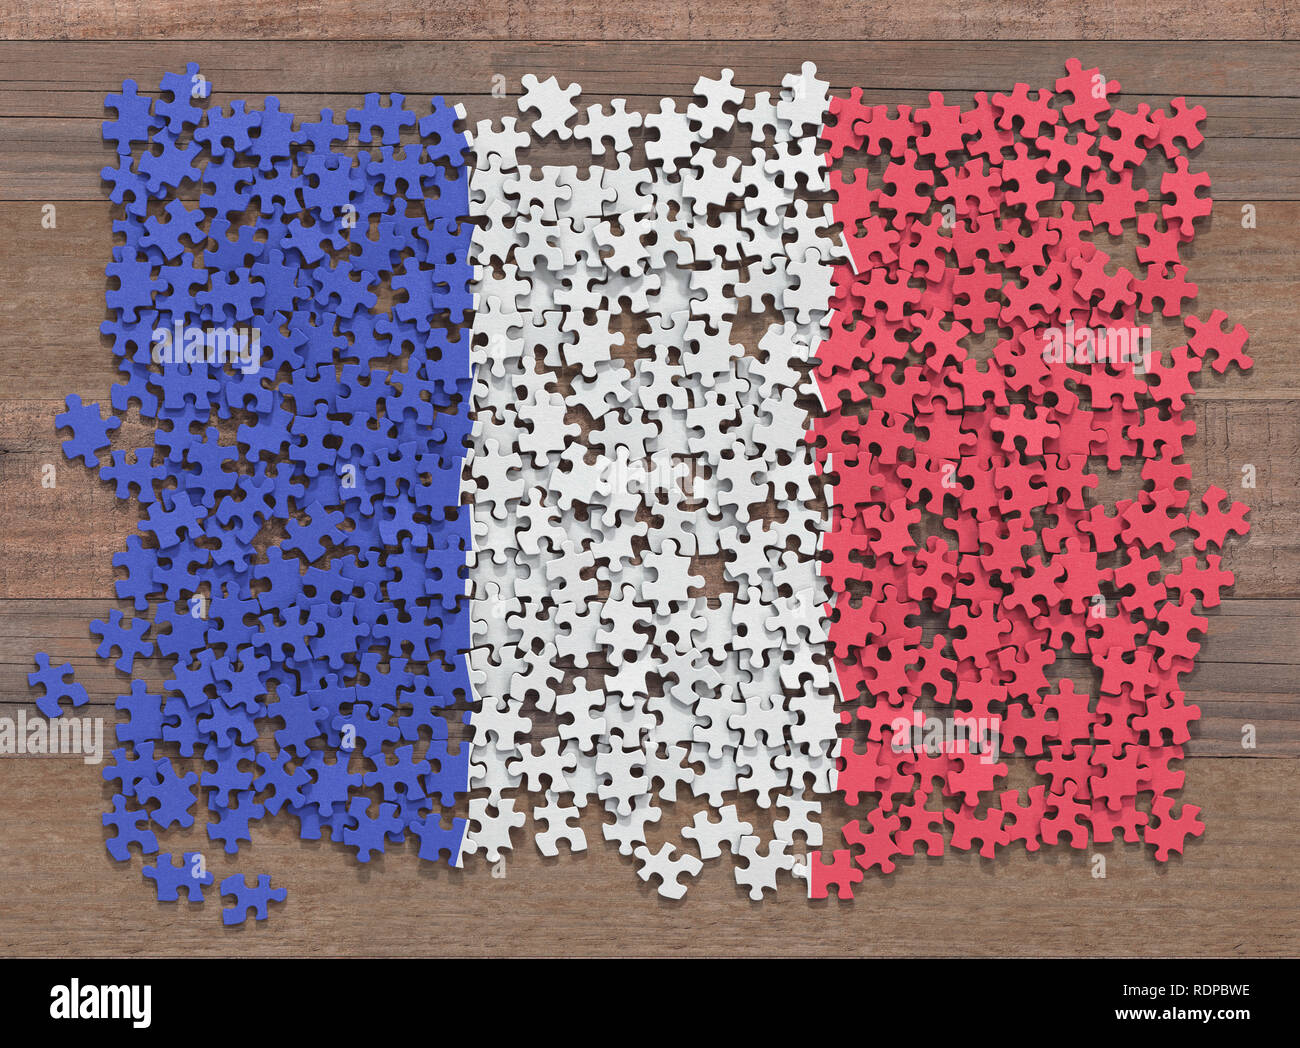 French flag made up of separate jigsaw puzzle pieces, illustration. - Stock Image